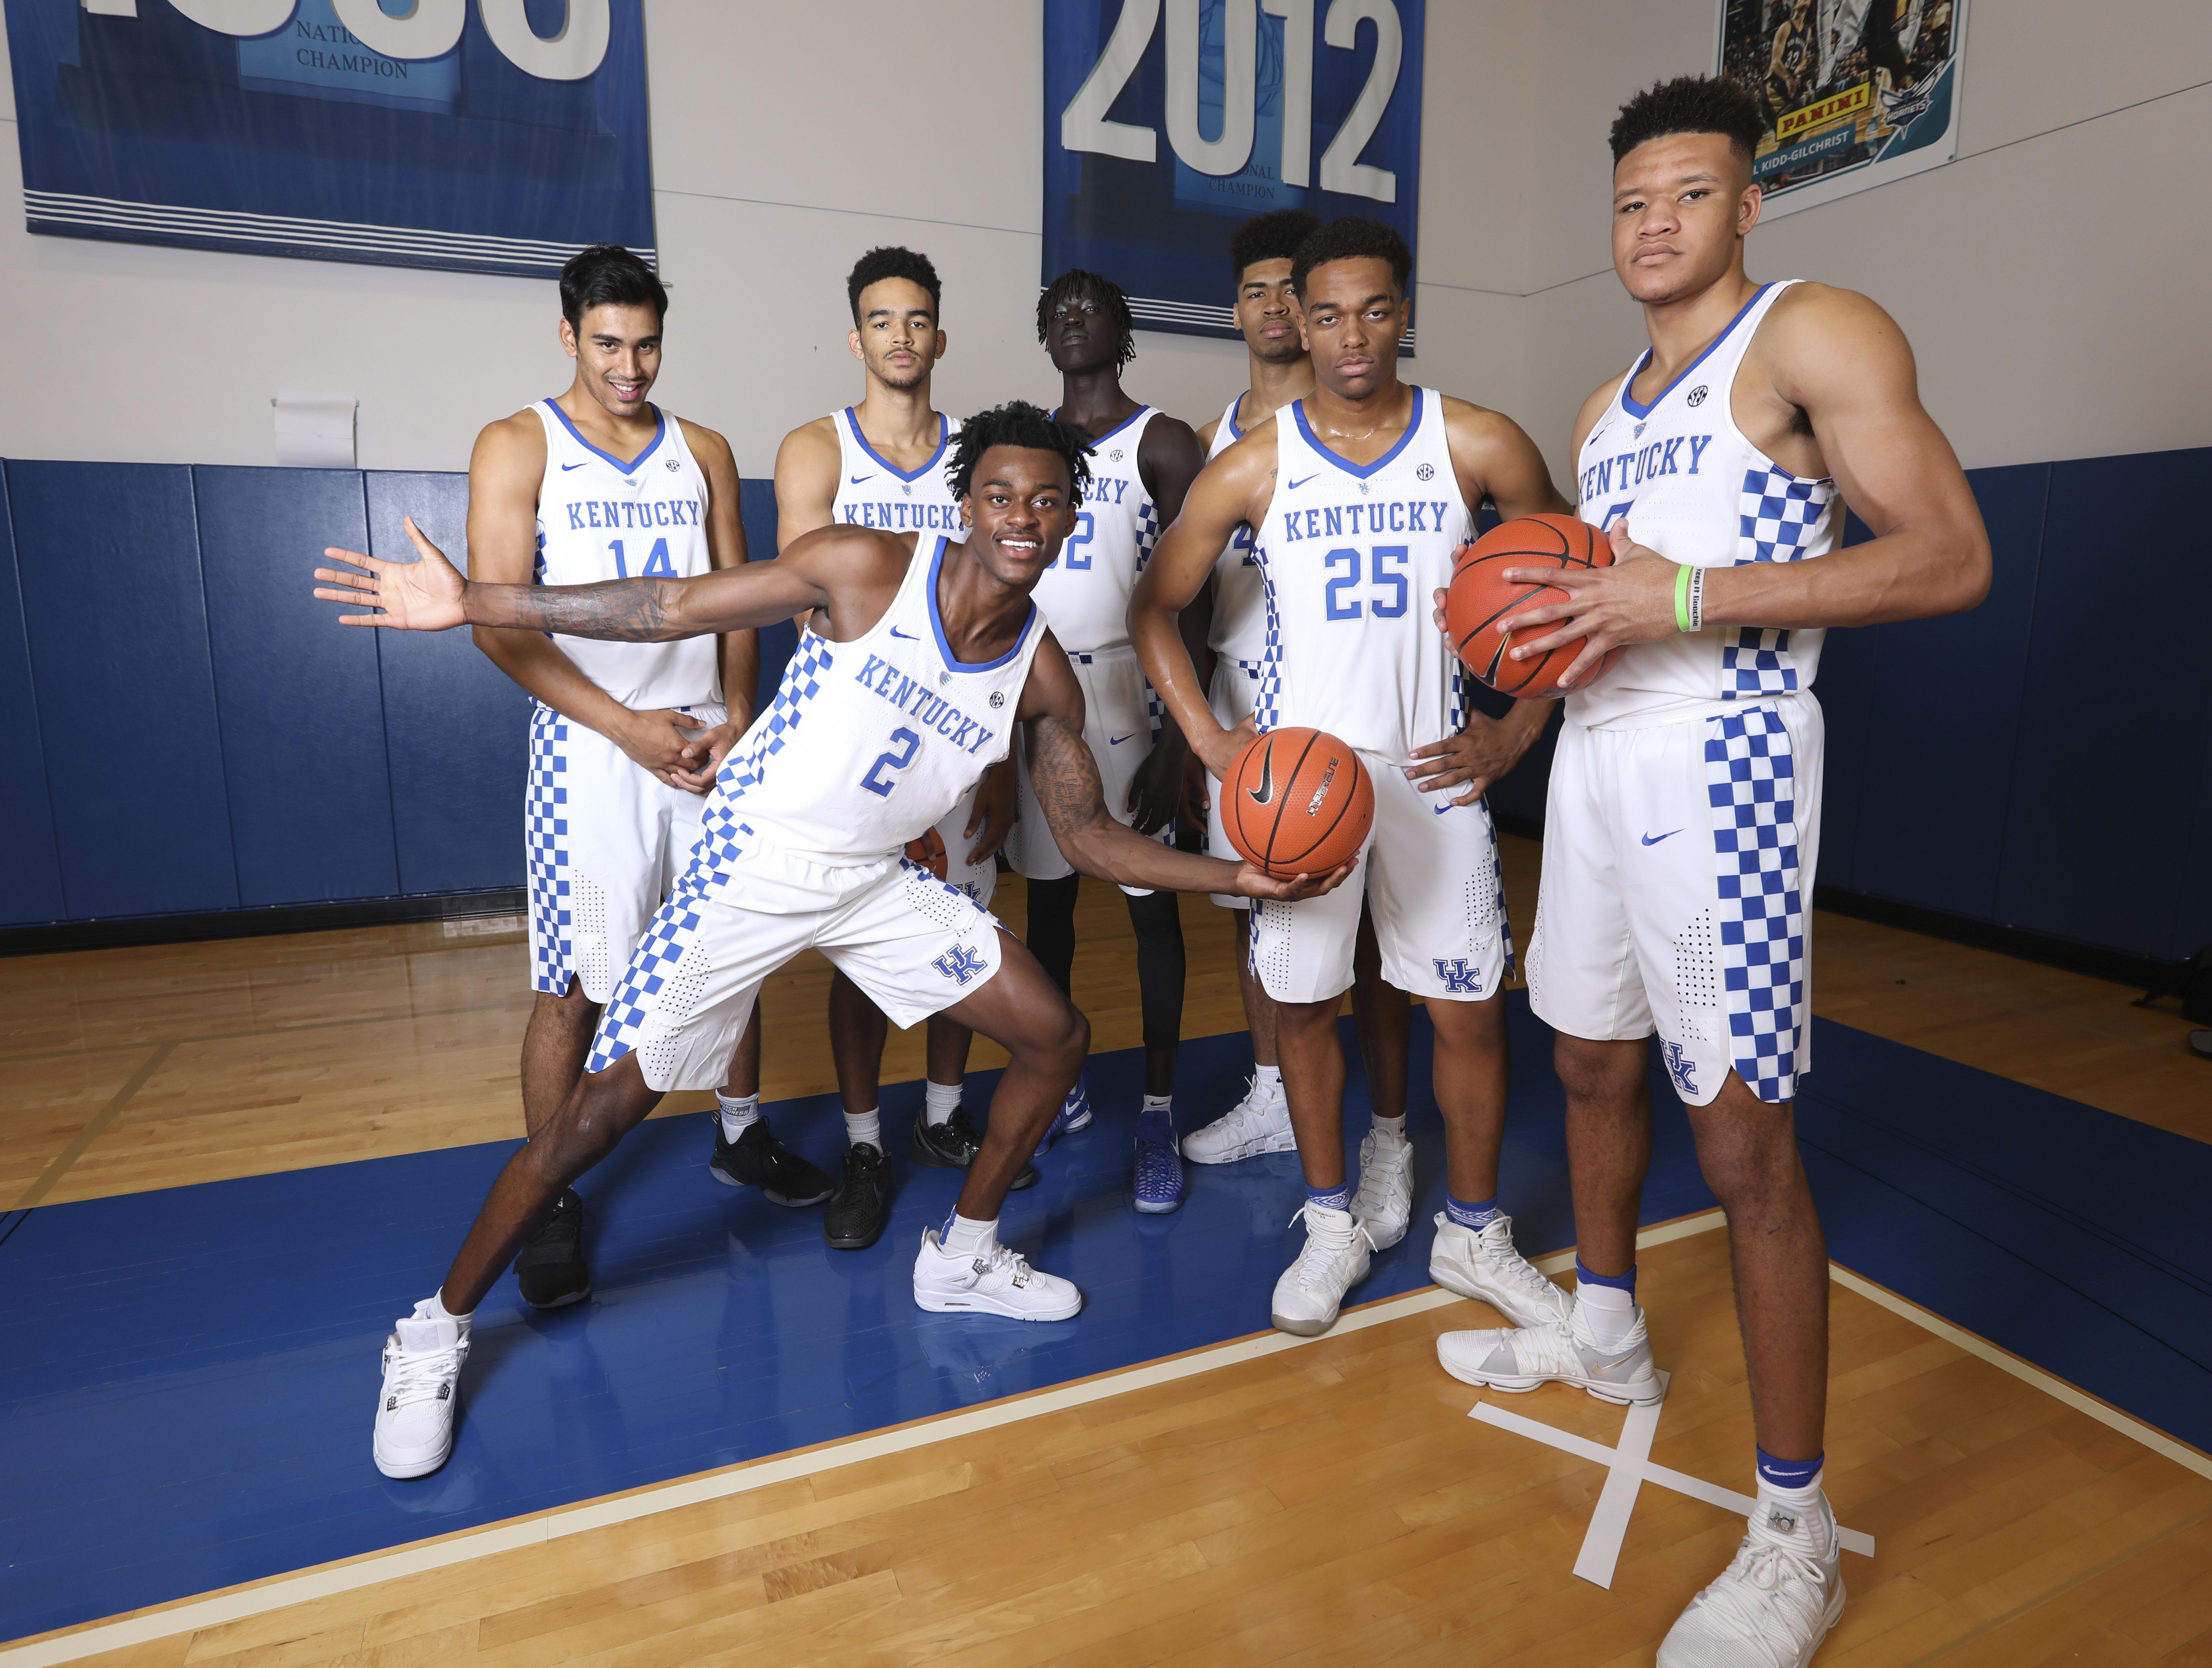 Kentucky Basketball What S Wrong With The Wildcats: What Would The NBA Eliminating 1-and-done Rule Do To NCAA